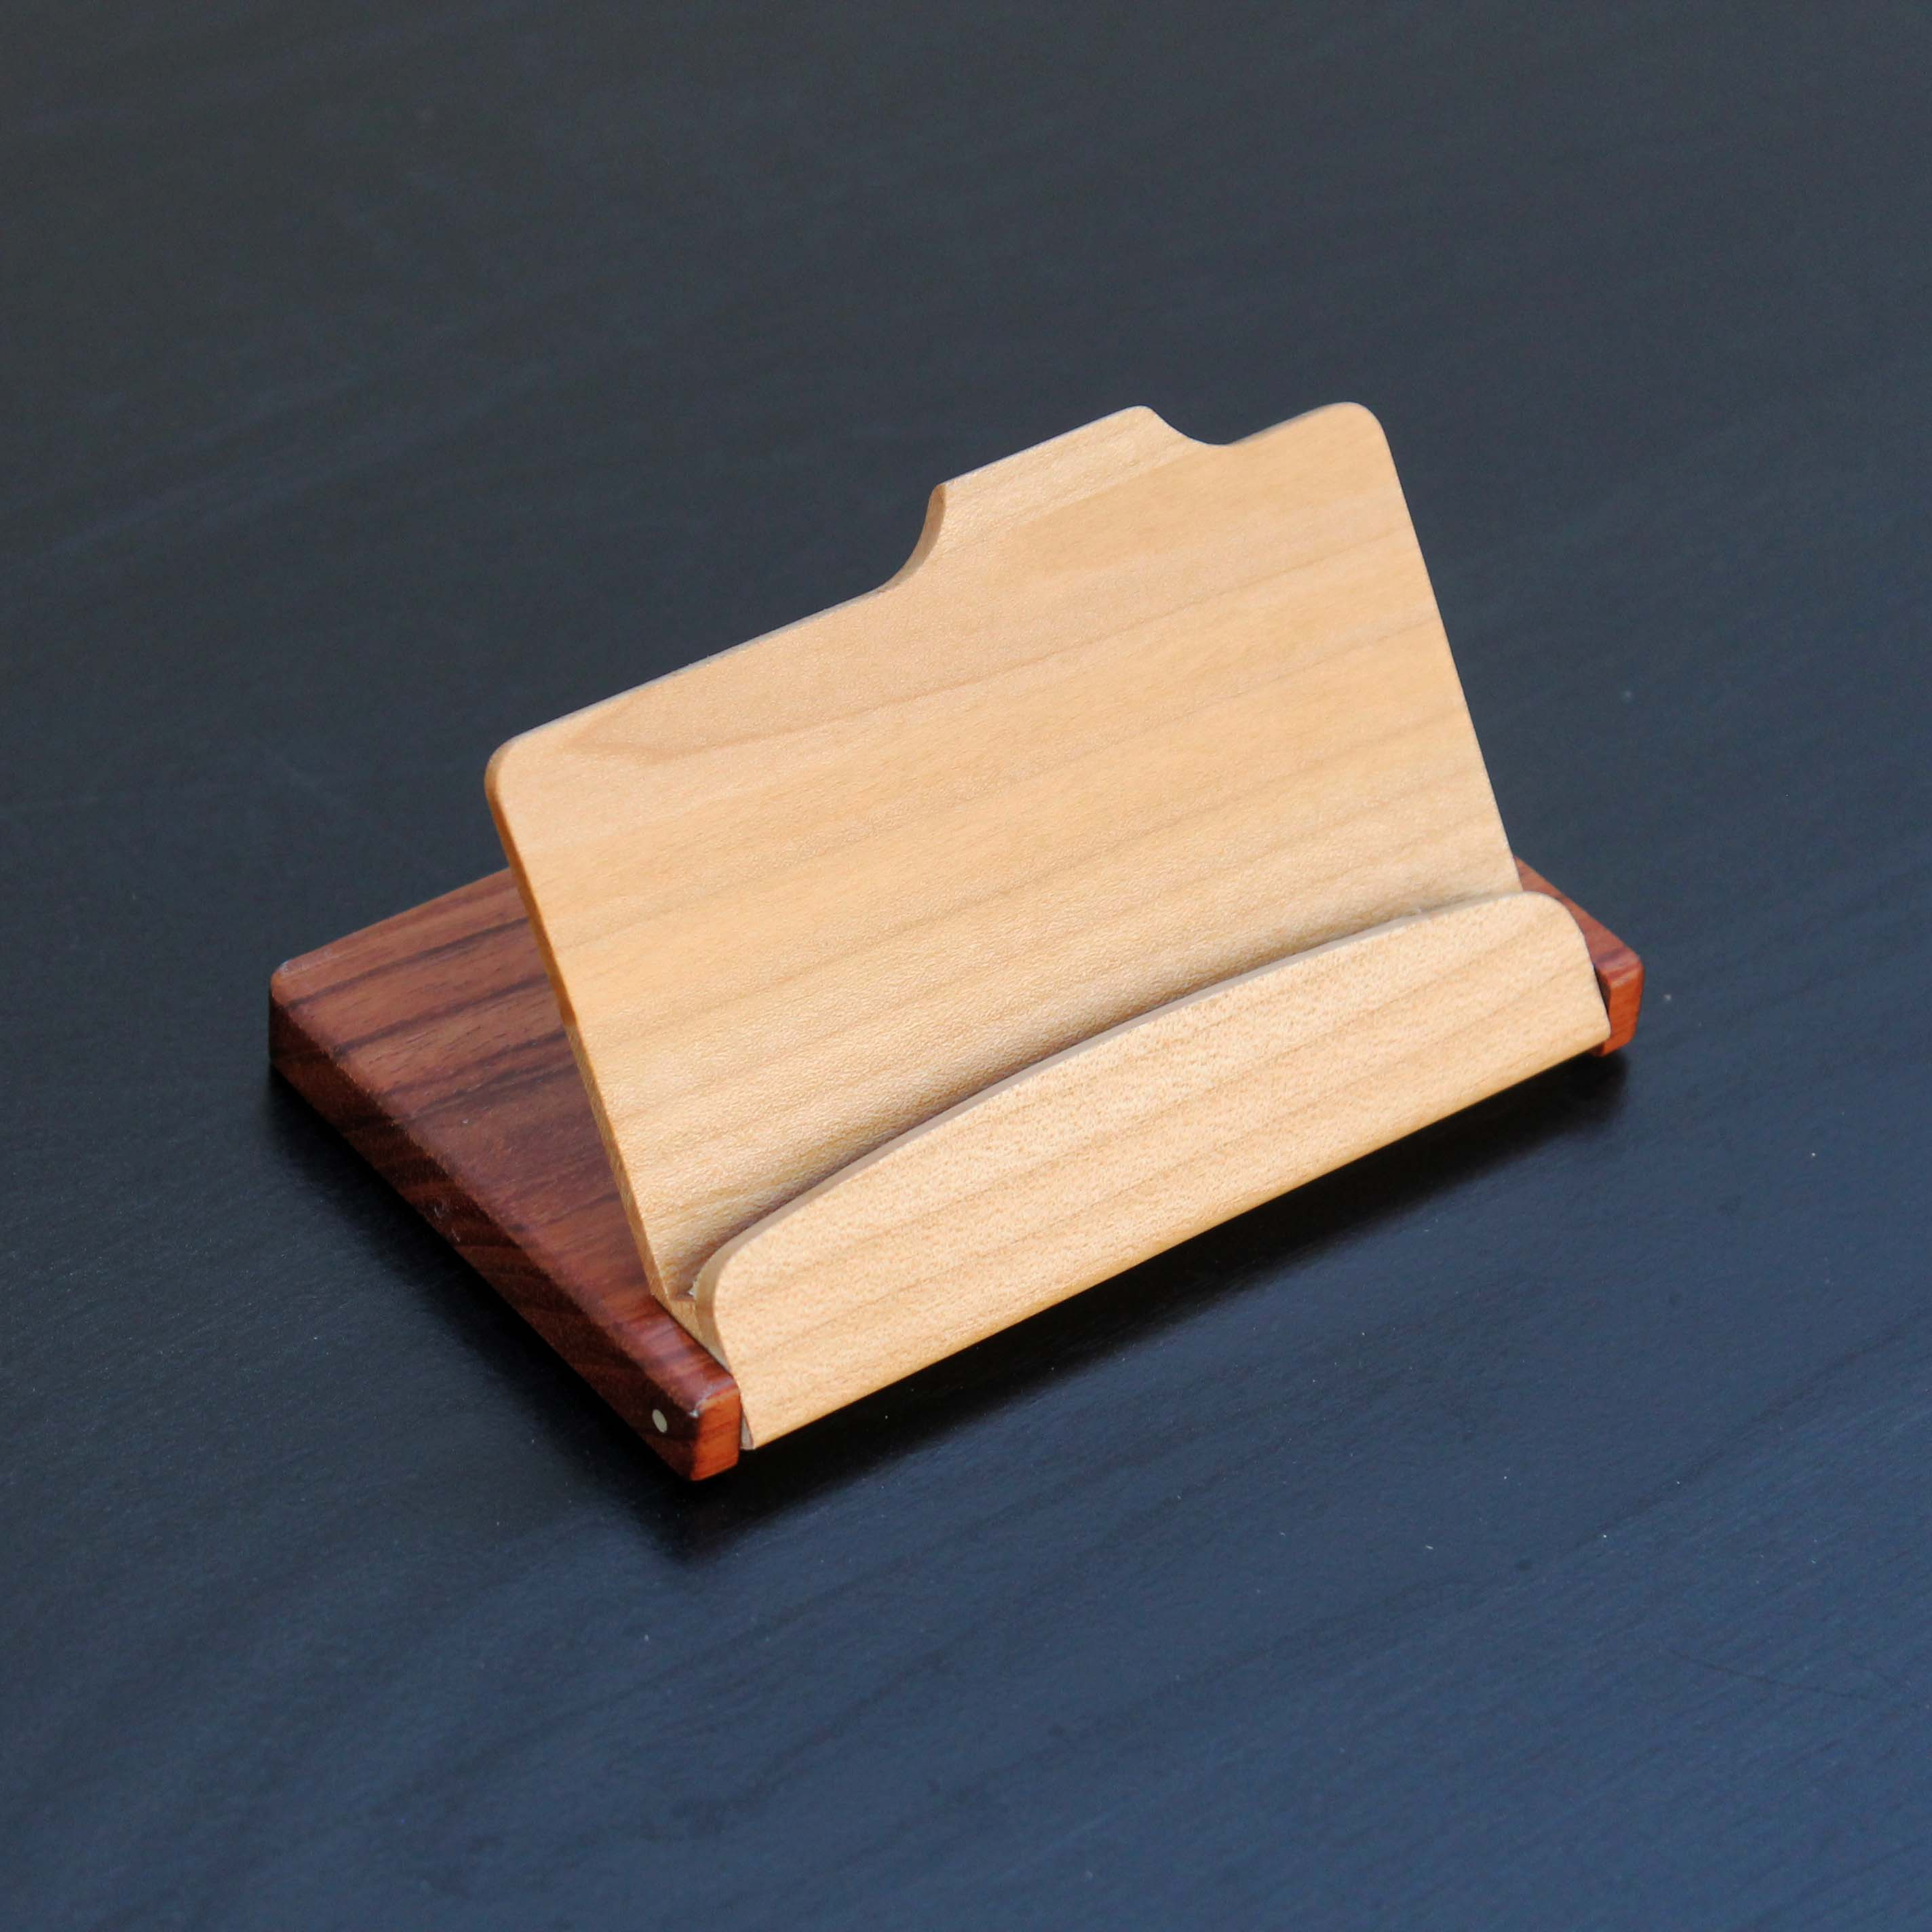 Personalized Wood Business Card Holder | JB corner - Etchey